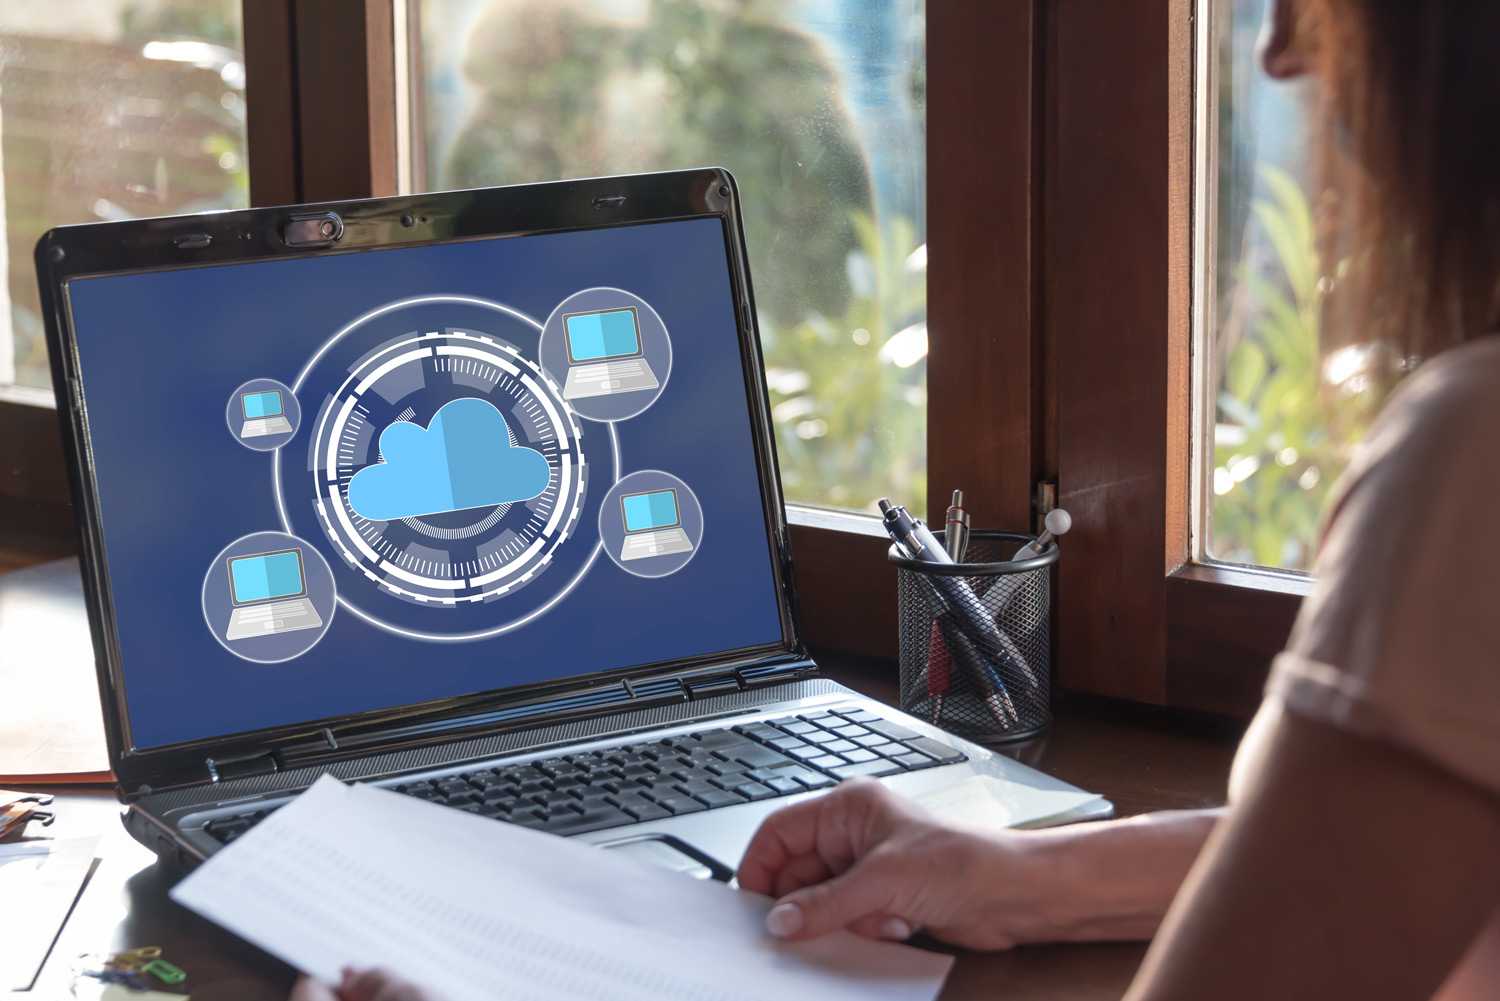 woman using a laptop computer with rendering of computer icons and cloud infrustructure